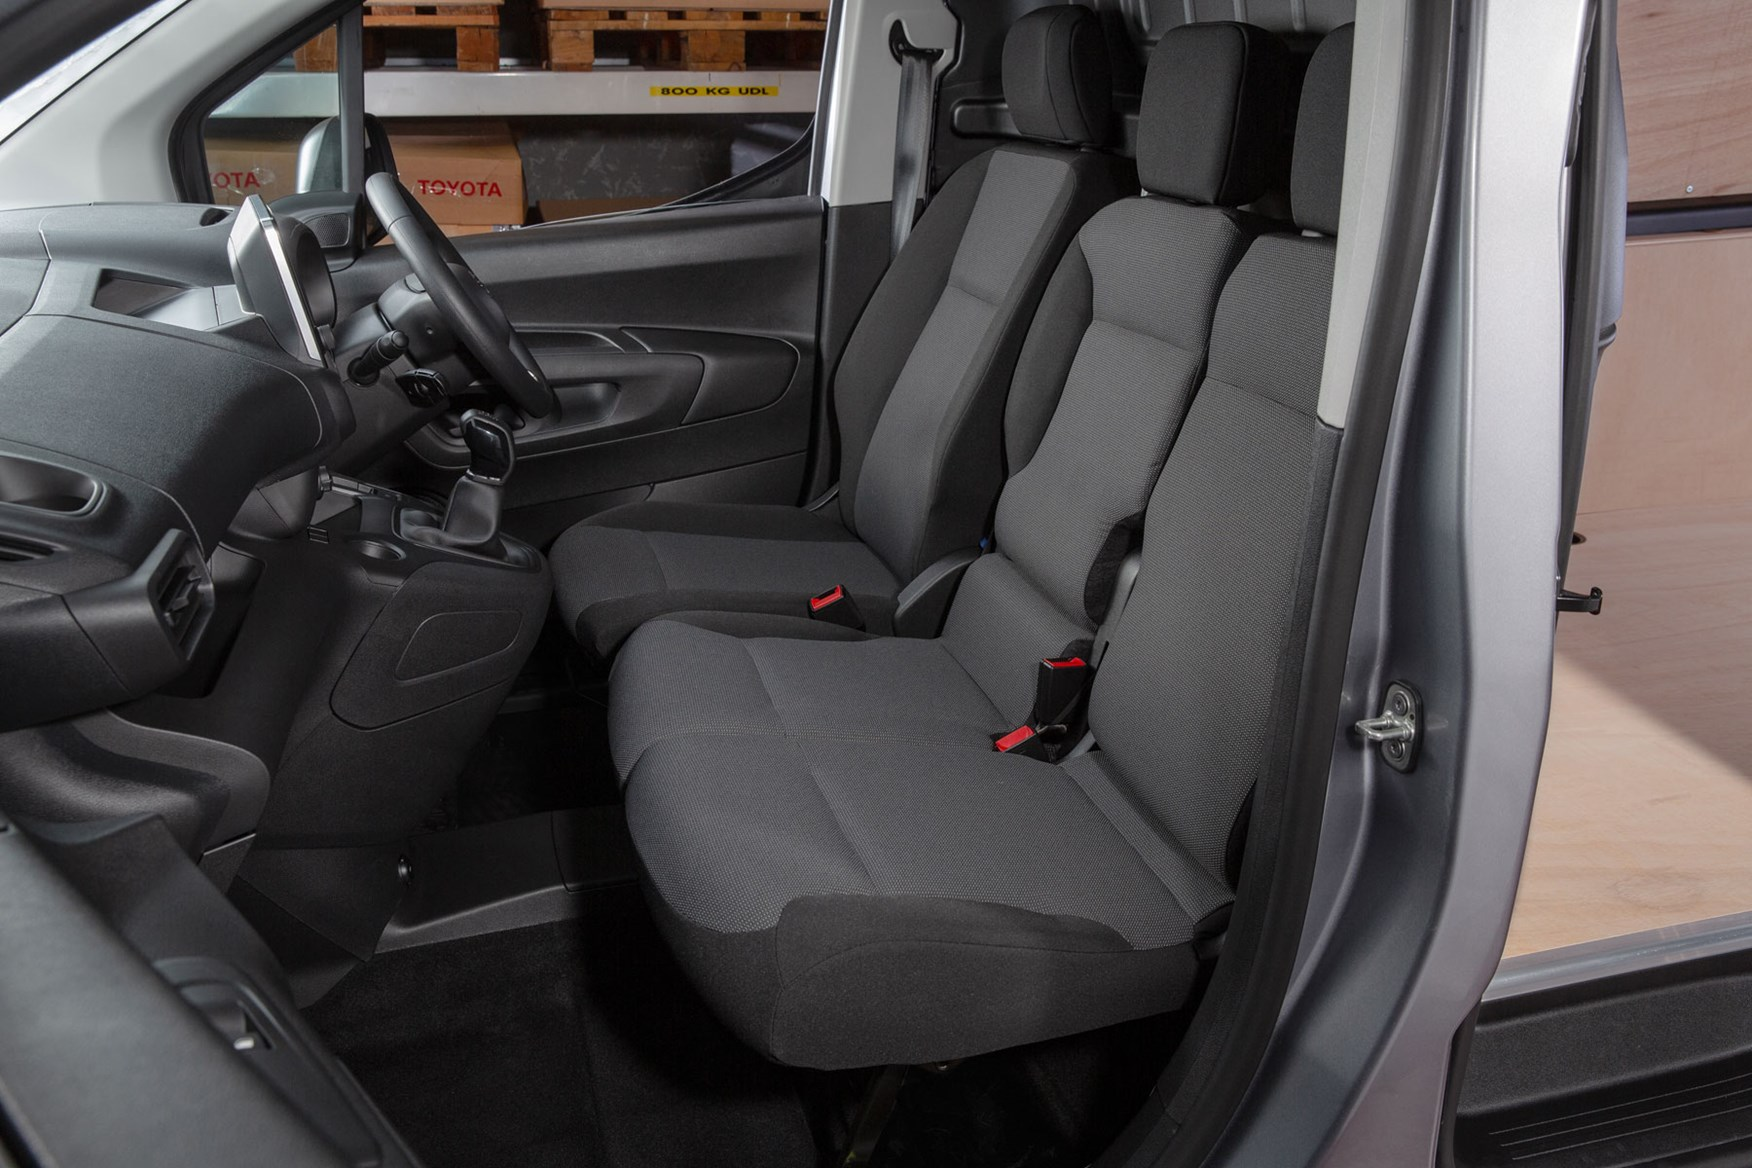 2020 Toyota Proace City review - cab interior, double passenger seat